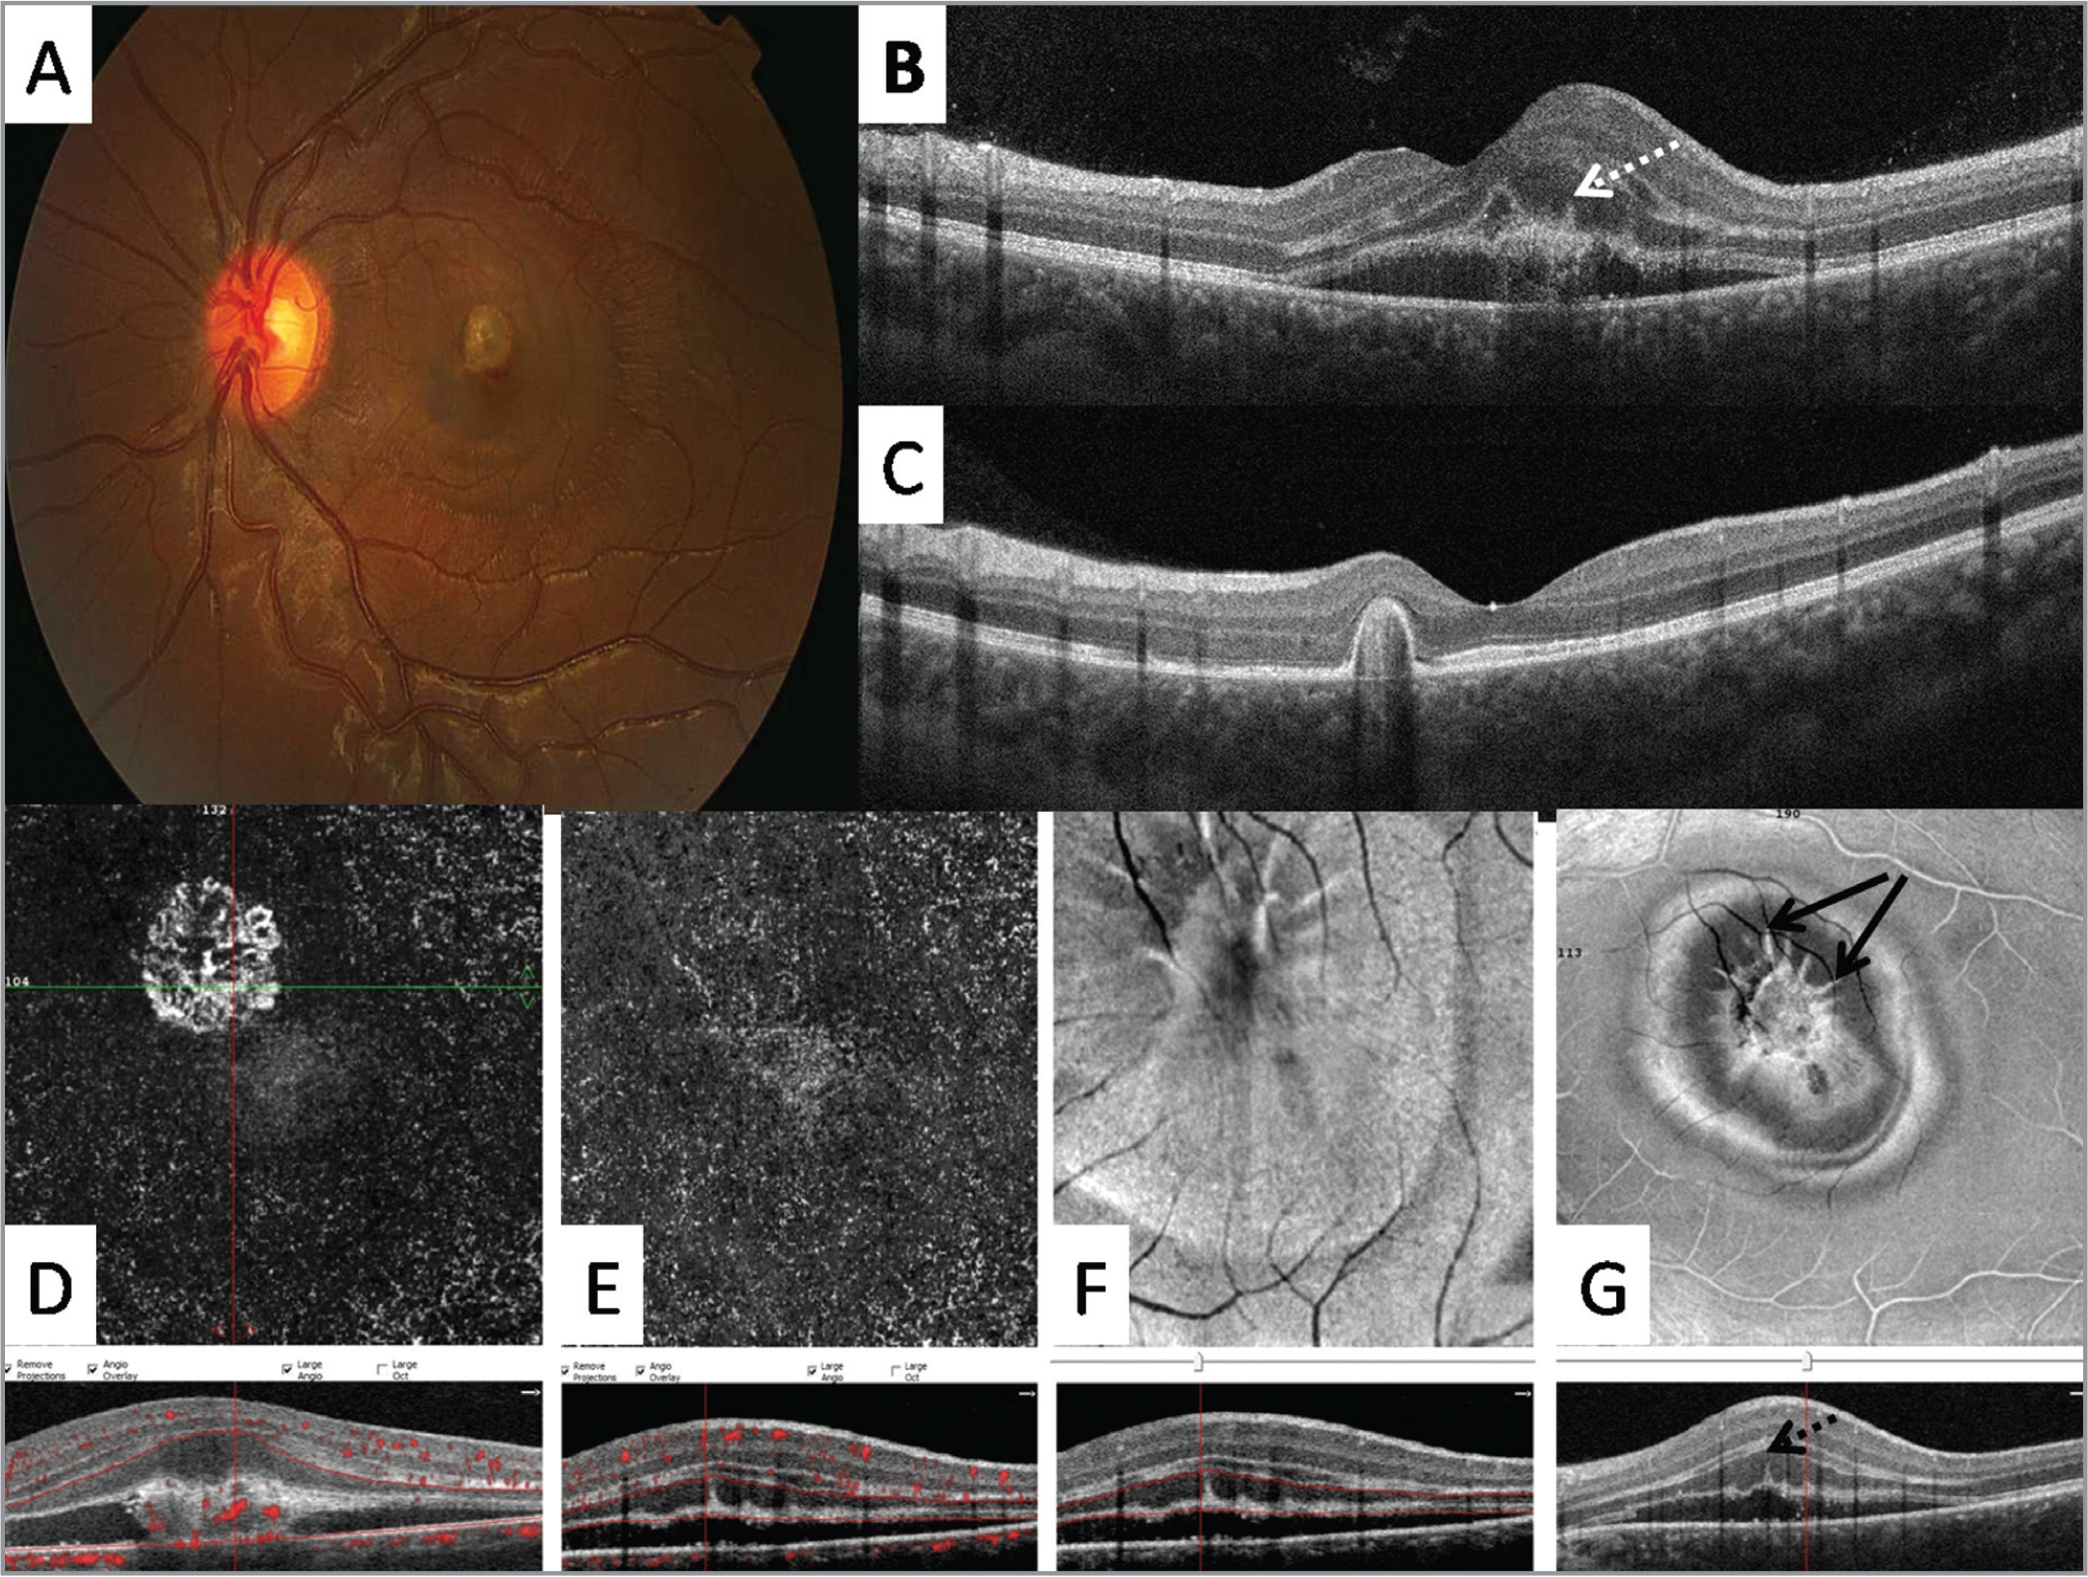 "Color fundus photography (A), optical coherence tomography (OCT) (B, C), en face OCT angiography (OCTA) (D, E), and en face structural OCT (F, G) images from an 8-year-old girl with laser-induced choroidal neovascularization (CNV). Radial hyperreflective lines (ie, the ""pitchfork"" sign, dashed white arrow in B and dashed black arrow in G) extending from the type 2 neovascular membrane, identified as subretinal hyperreflective material (SHRM), are noted with the baseline cross-sectional OCT B-scan (B); these linear lesions resolved after intravitreal bevacizumab therapy (C). Note the evolution into a type 1 CNV lesion after intravitreal anti-vascular endothelial growth factor therapy. The type 2 CNV lesion is identified with en face OCTA (D) but a corresponding flow signal for the radial spikes is absent (E). The linear lesions (solid black arrows in G) are more clearly visible in the baseline 6 mm x 6 mm en face OCT image with segmentation of the outer retina (G) and display a remarkable spiked-wreath pattern."